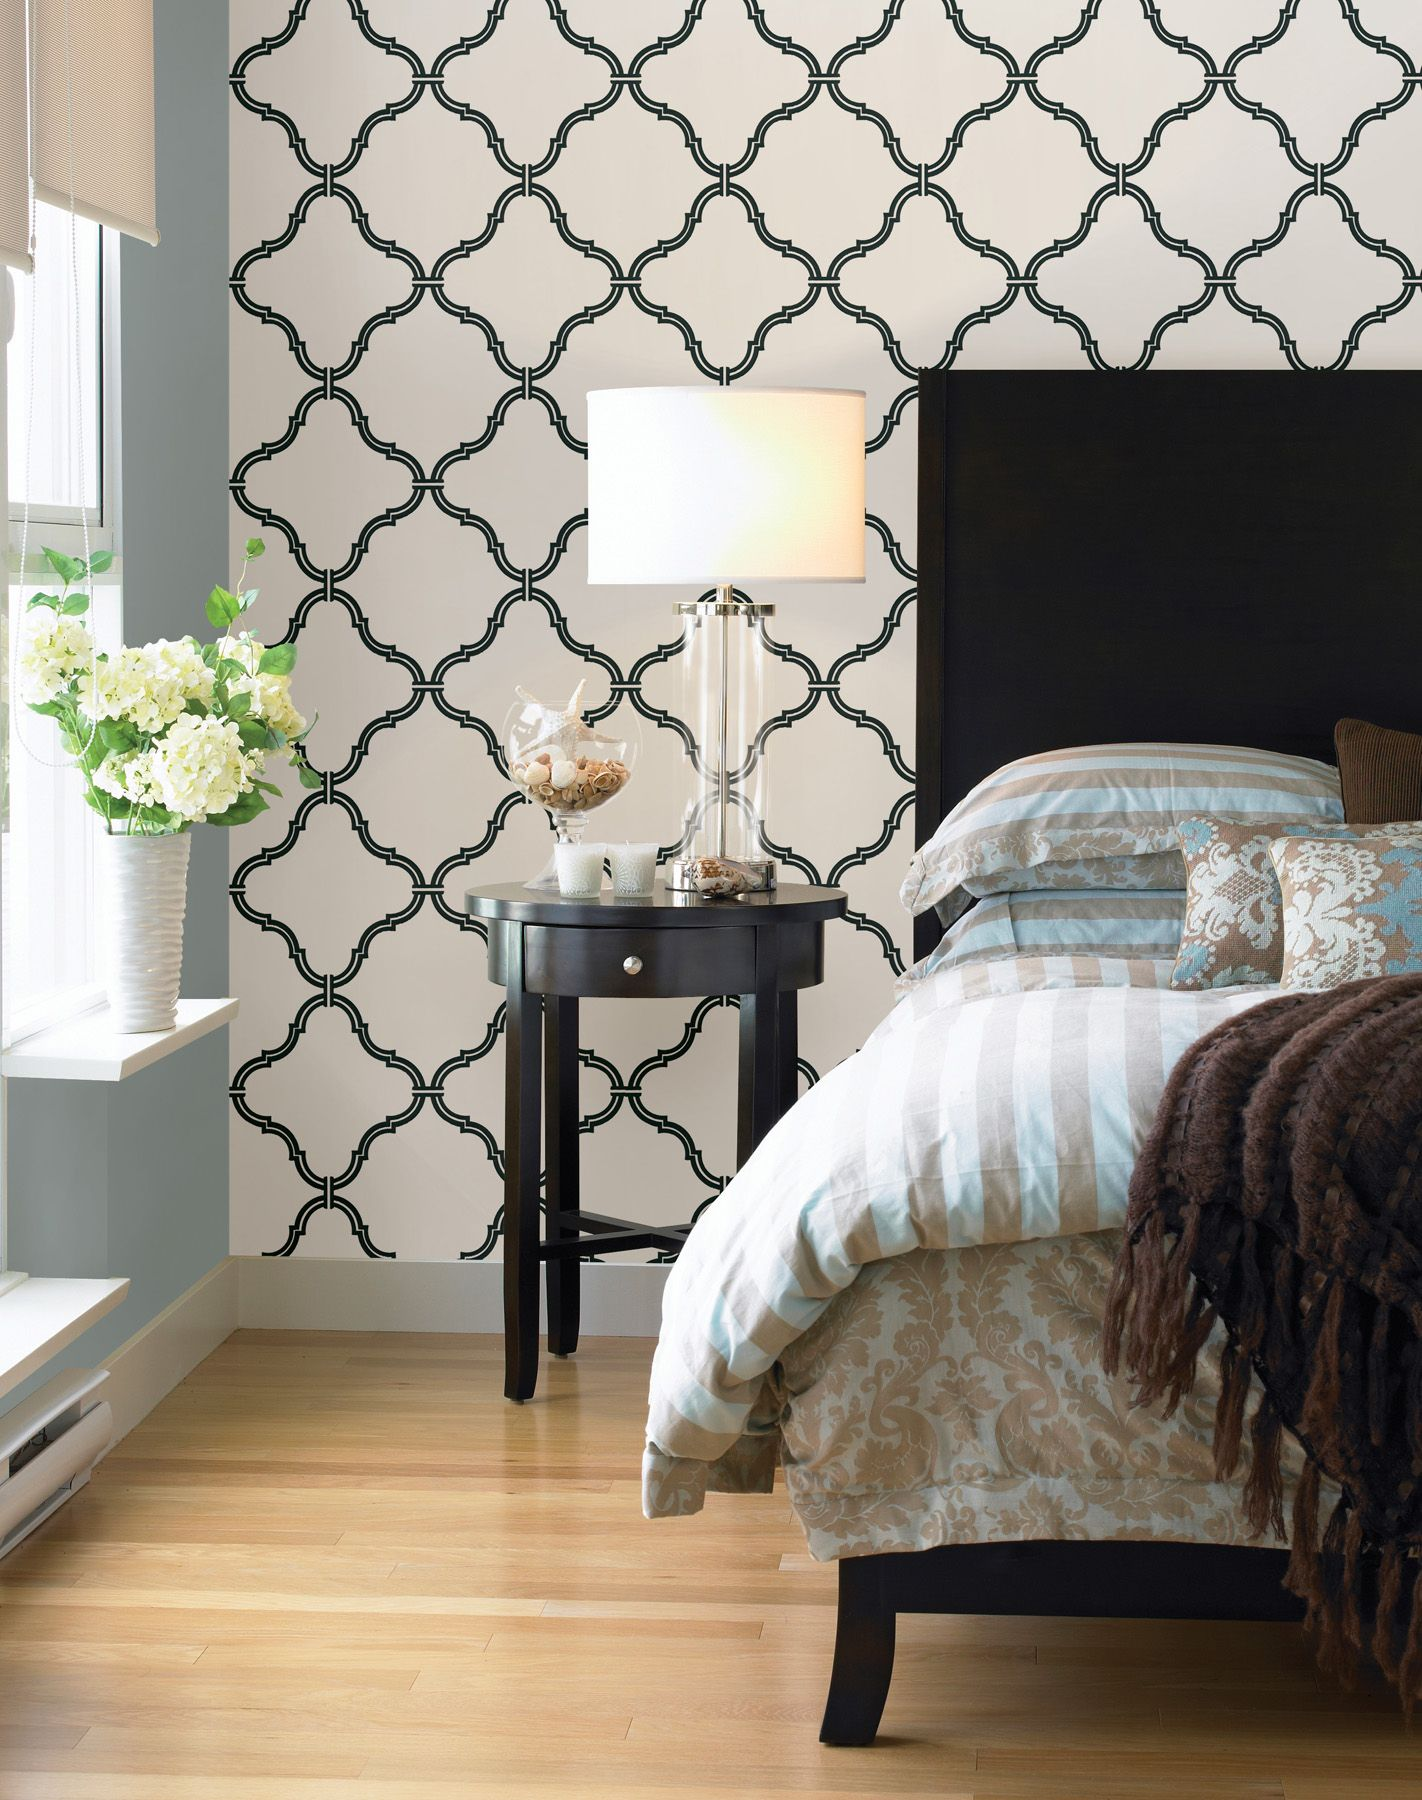 Pin by Gina B on Home Design  Feature wall bedroom, Bedroom